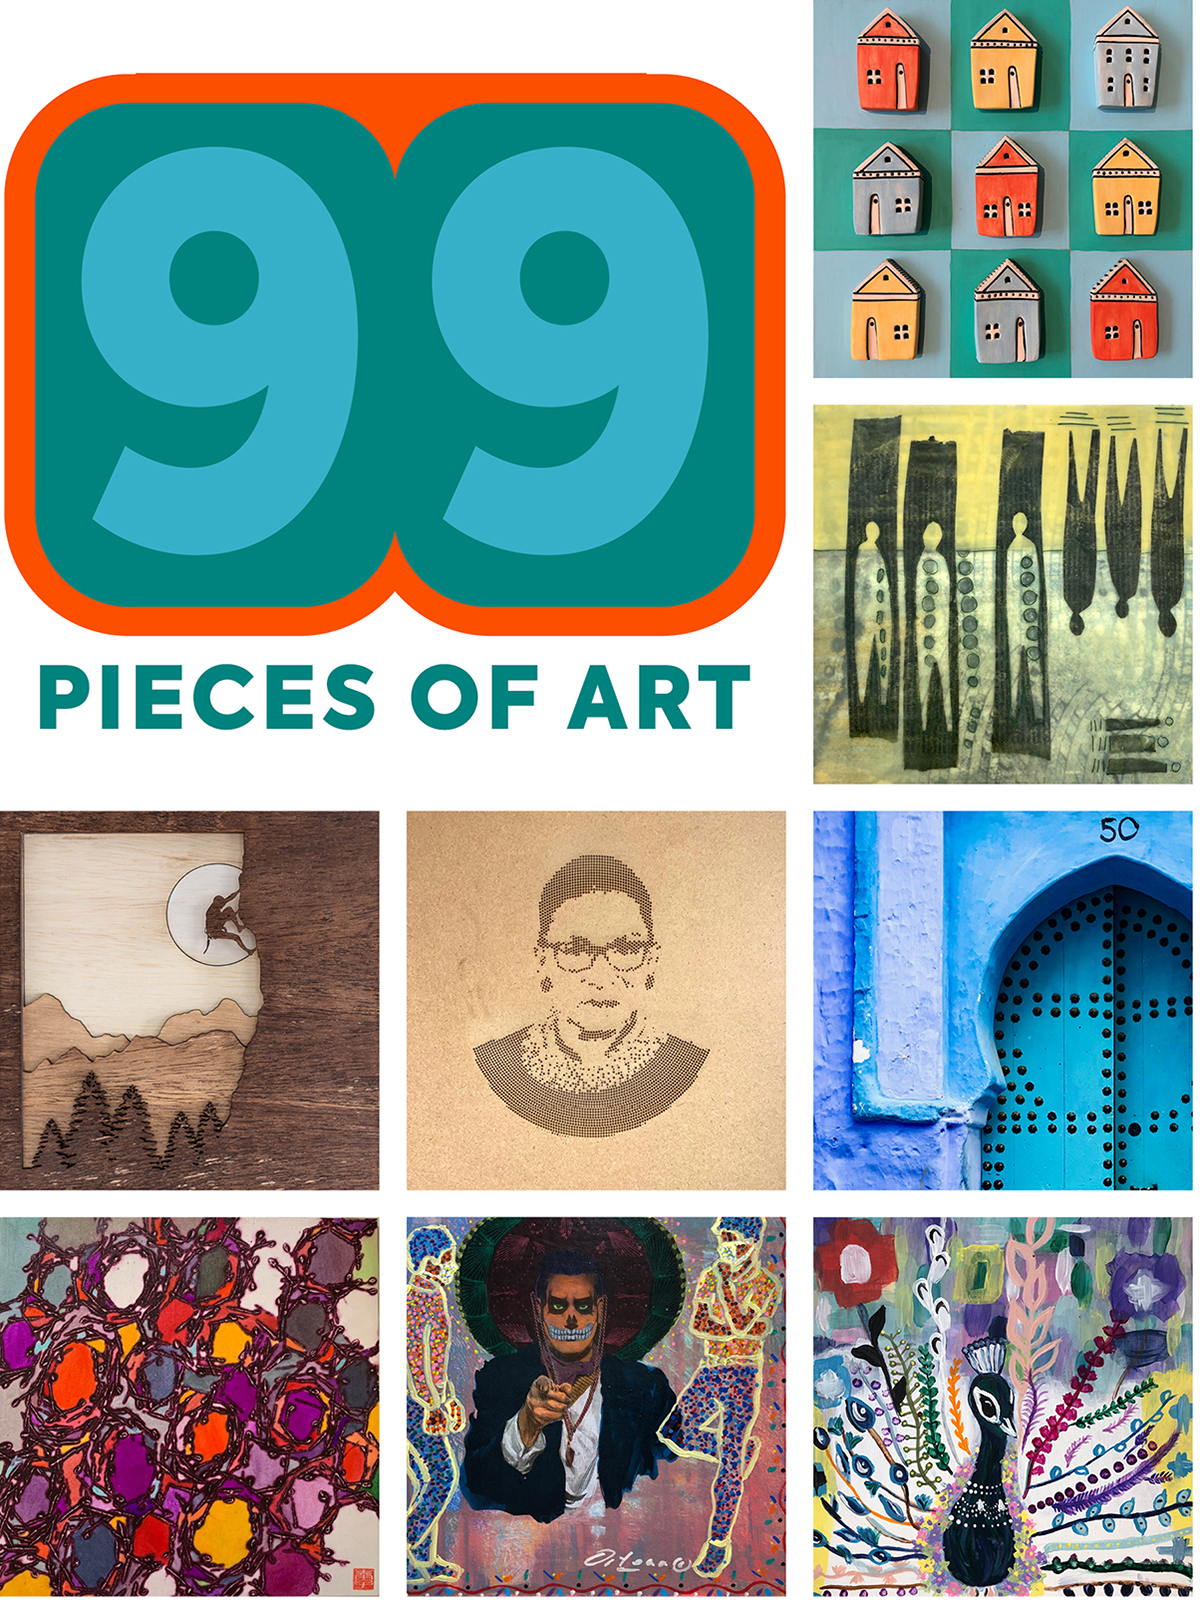 Access Gallery 99 pieces of Art